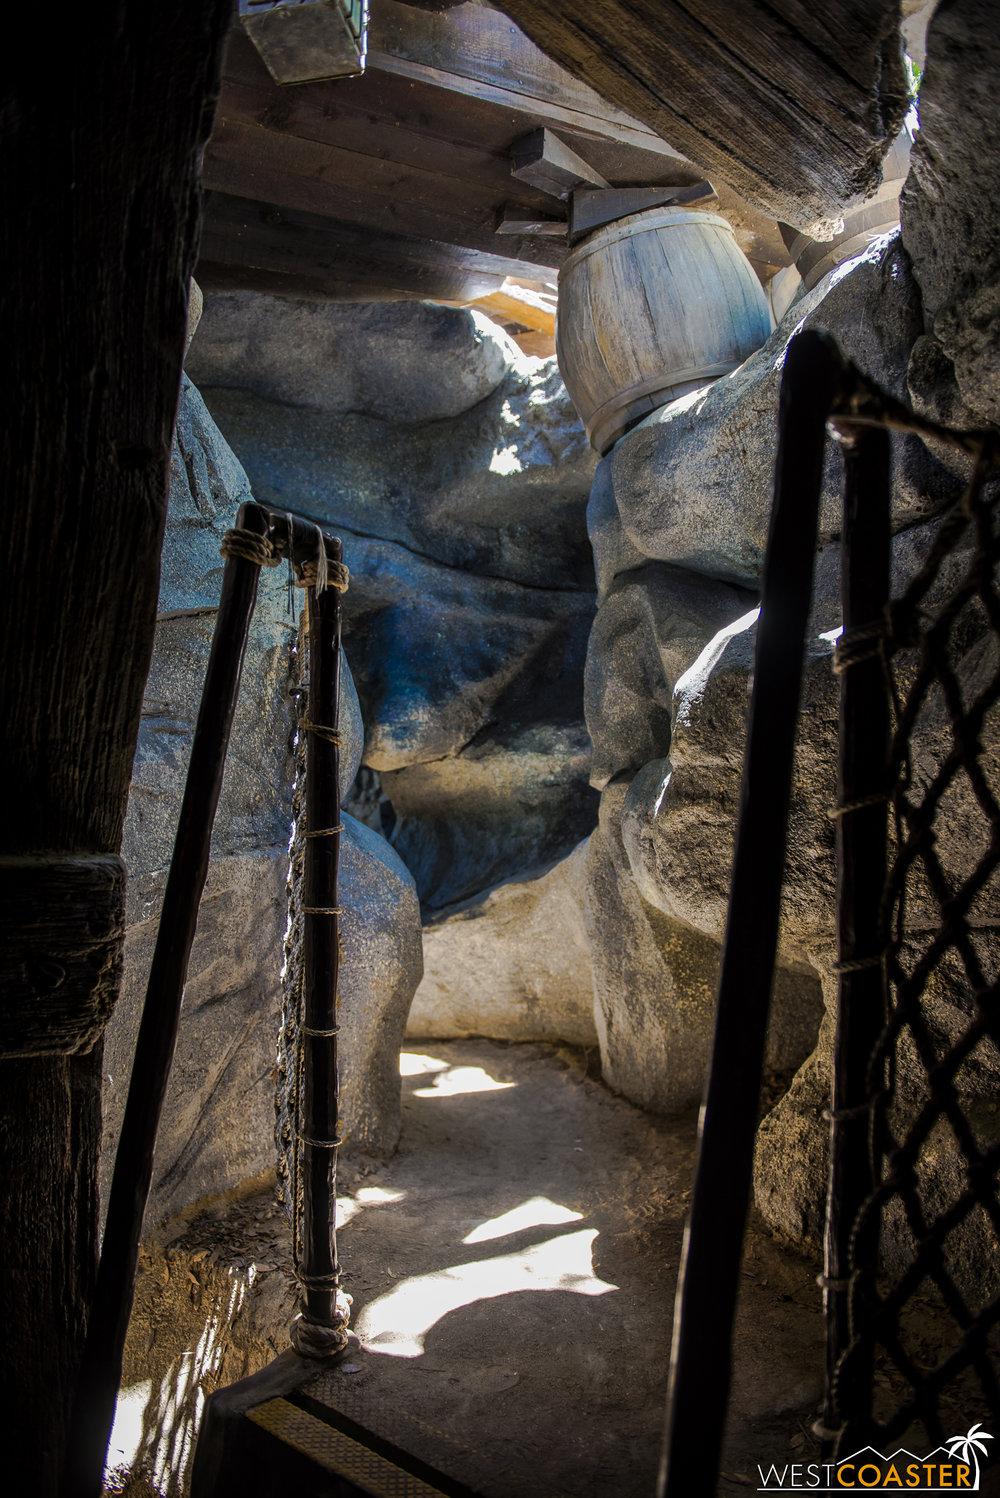 These caves have always been a child's playground, with many tight quarters that adults would have trouble with.